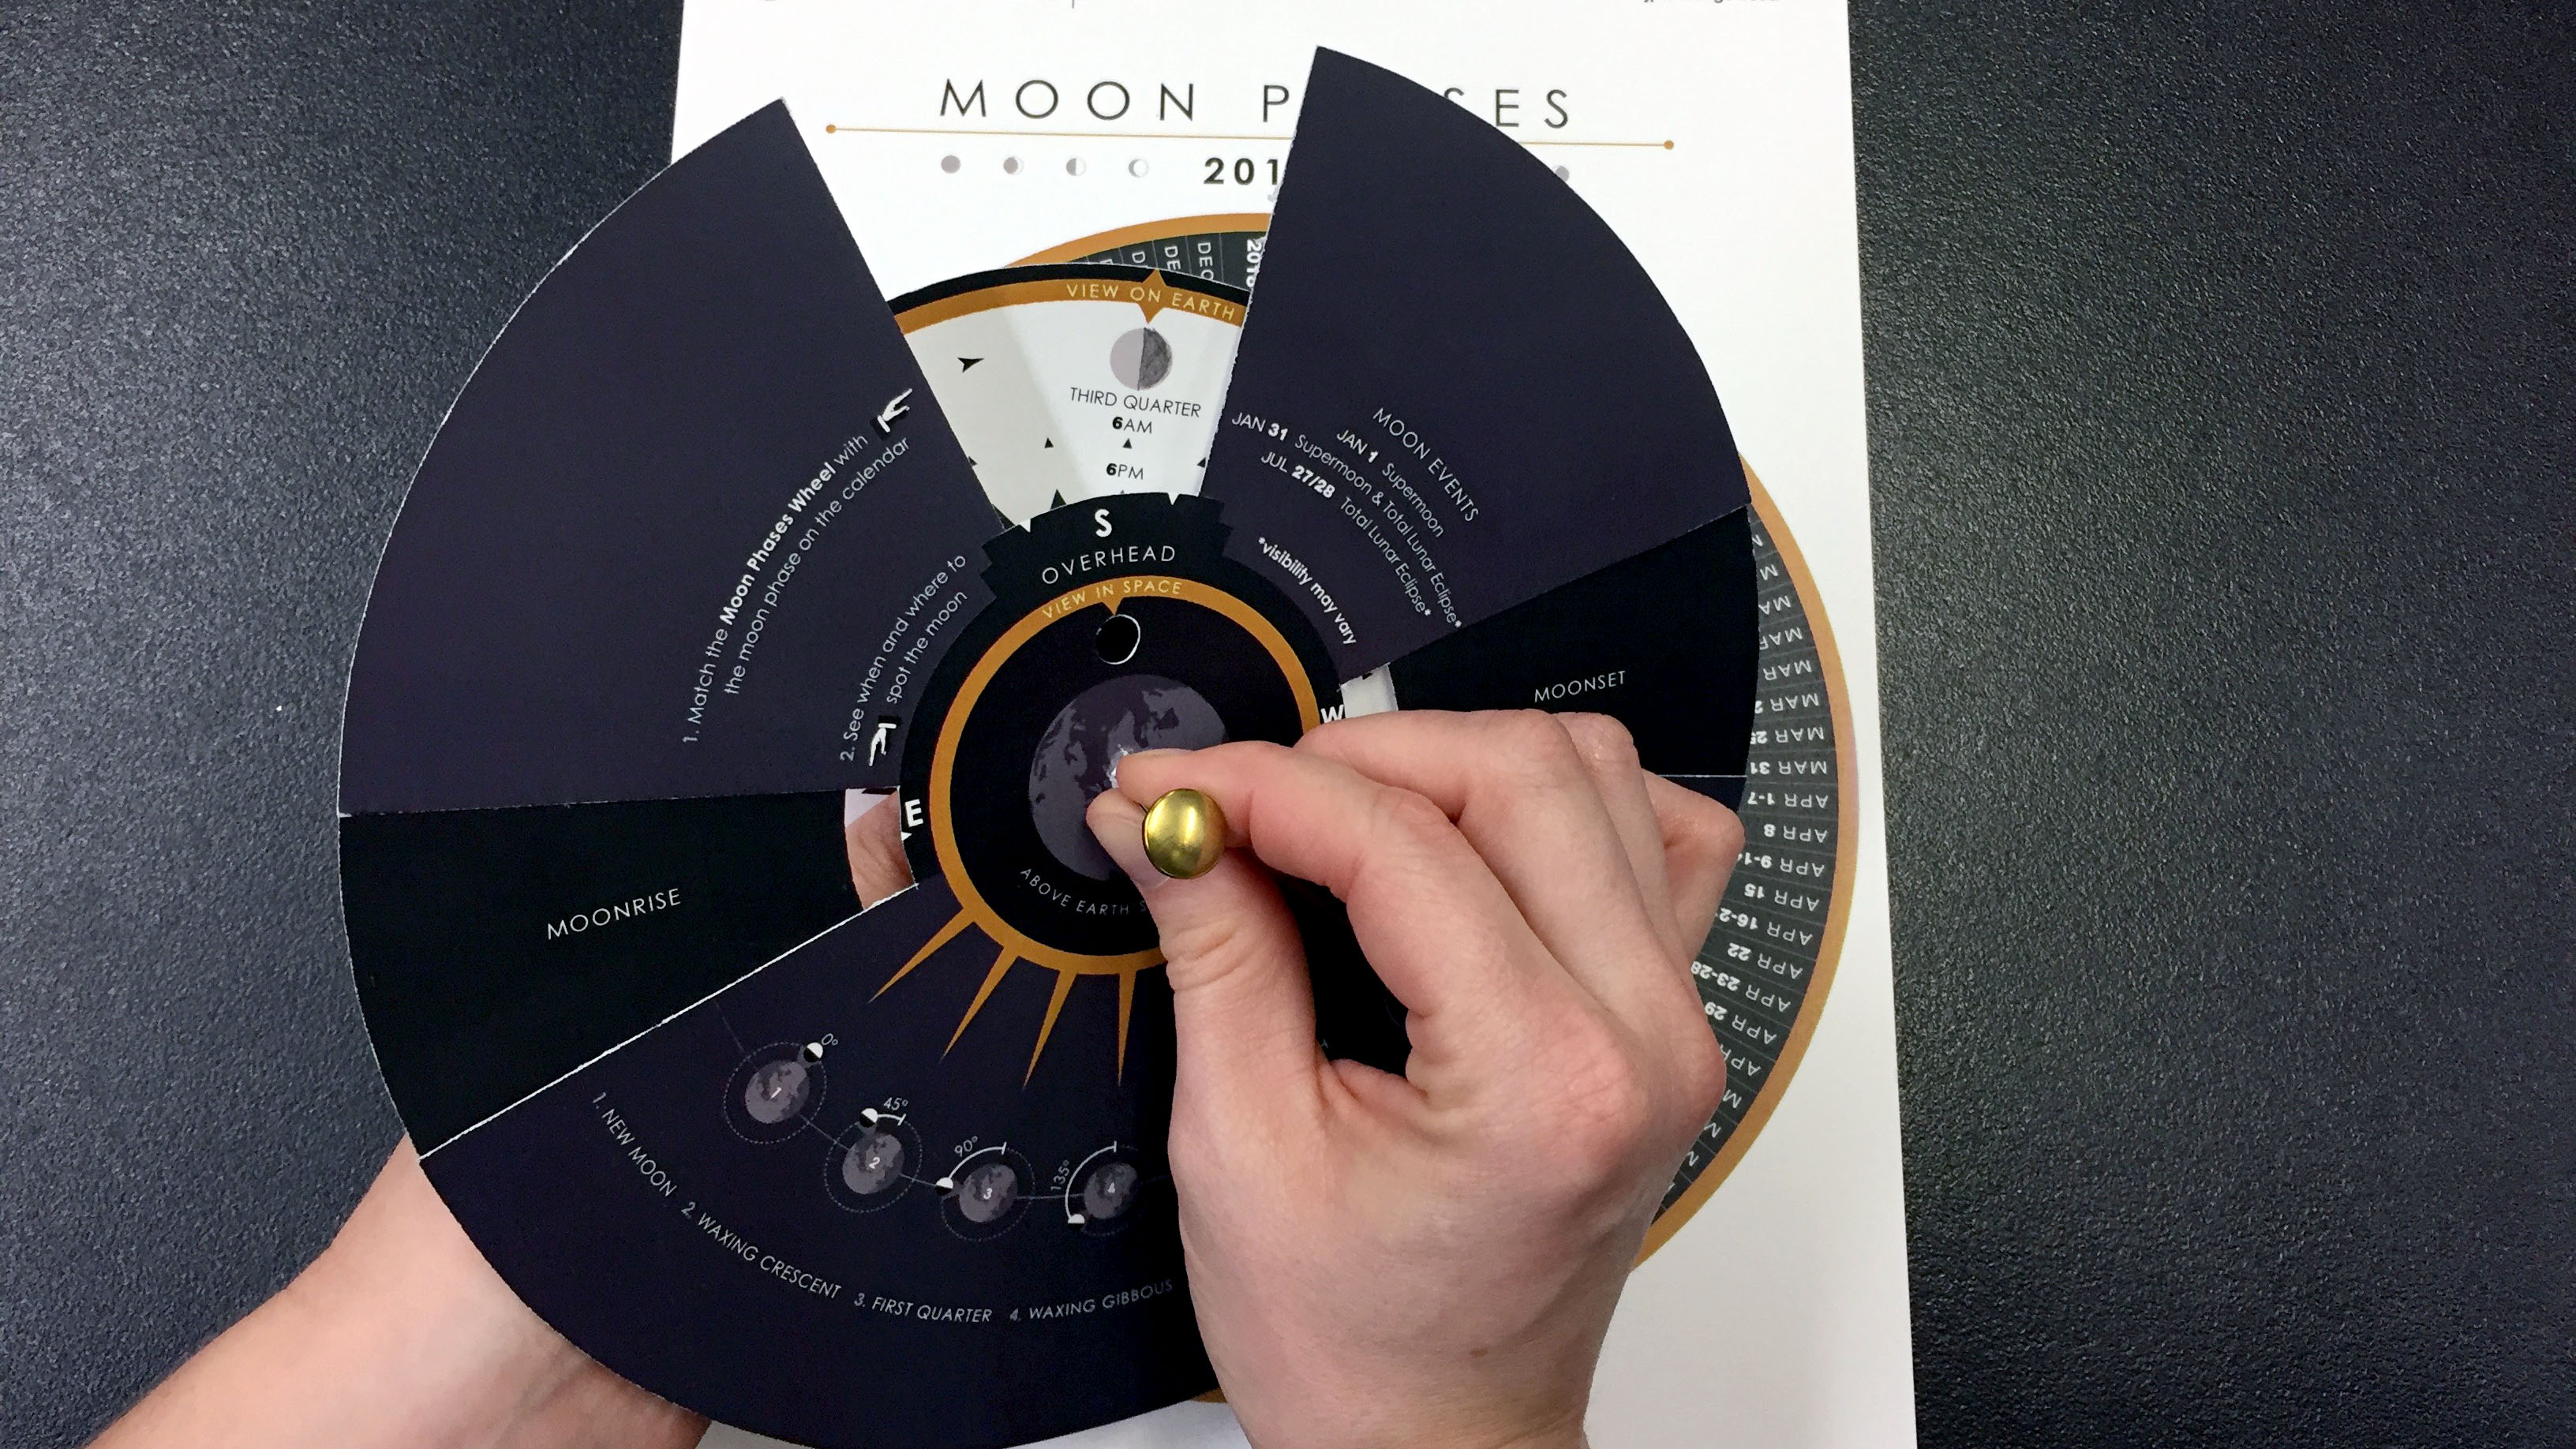 Stacking the Viewing Wheel on top of the Moon Phases Wheel and then both of those on the Calendar wheel and placing a brass fastener through the guide hole.